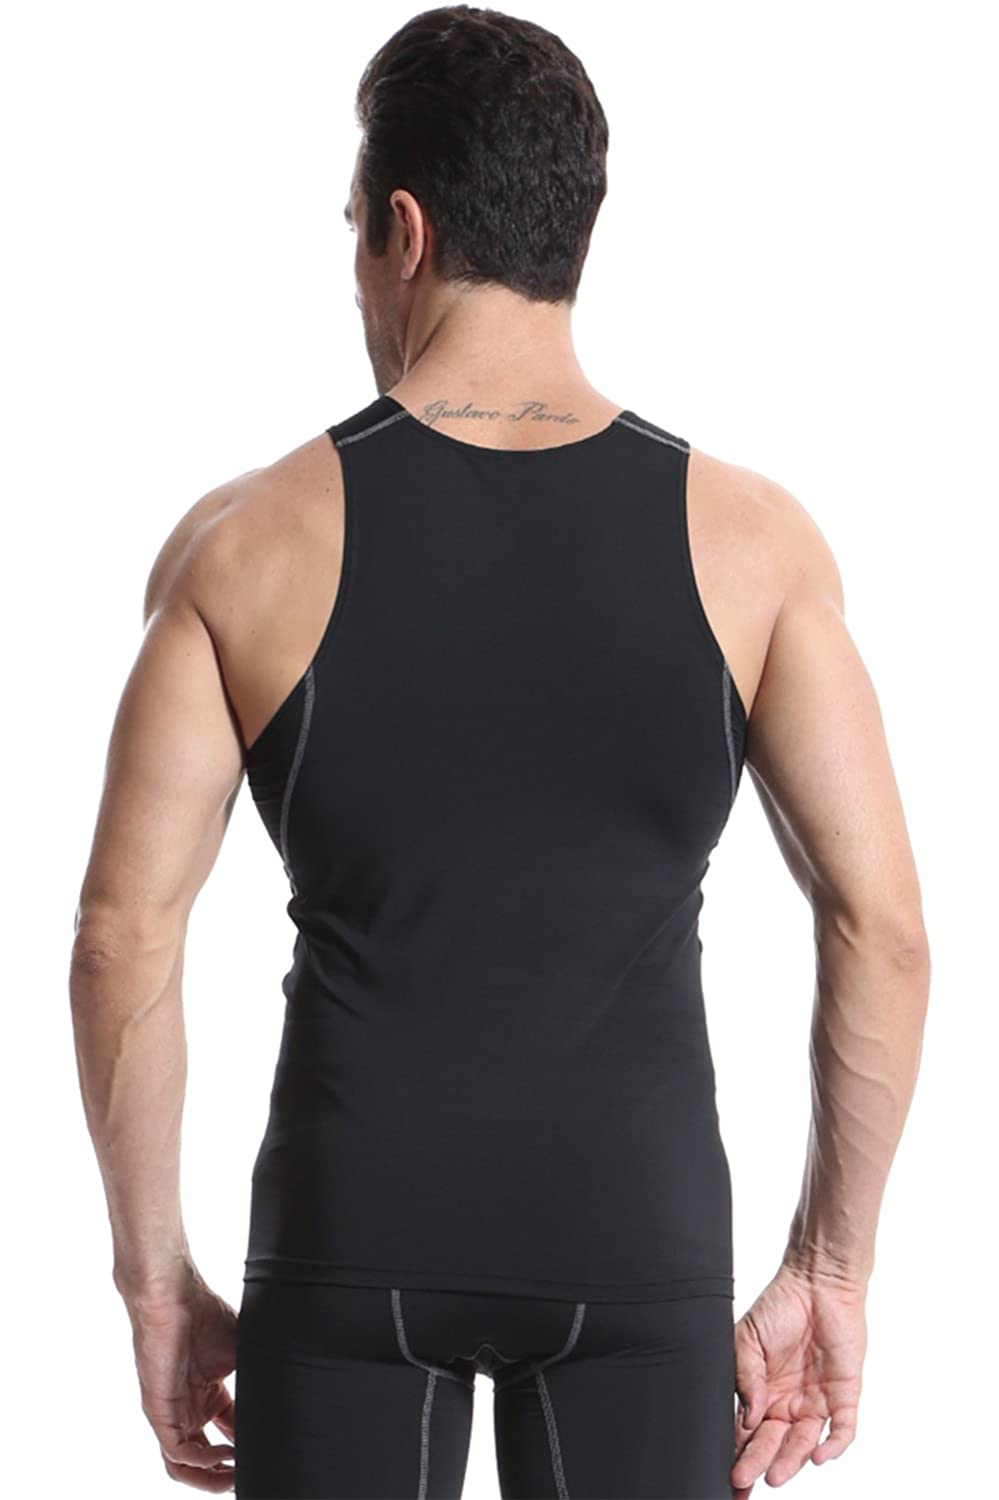 FASKUNOIE Mens 3 Pack Breathable Compression Athletic Tank Top Training Muscle Shirt